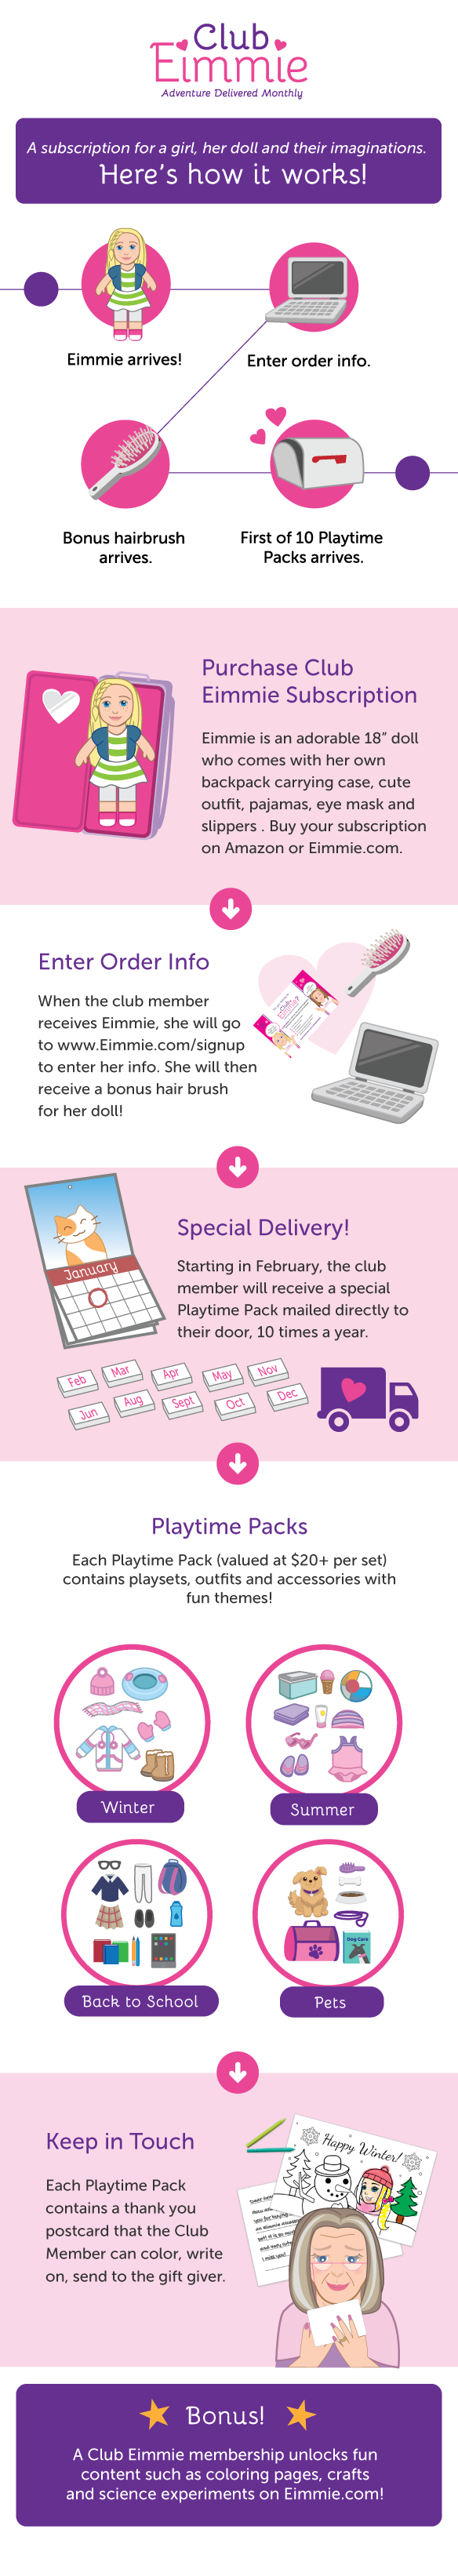 How Club Eimmie Subscription Works Infographic